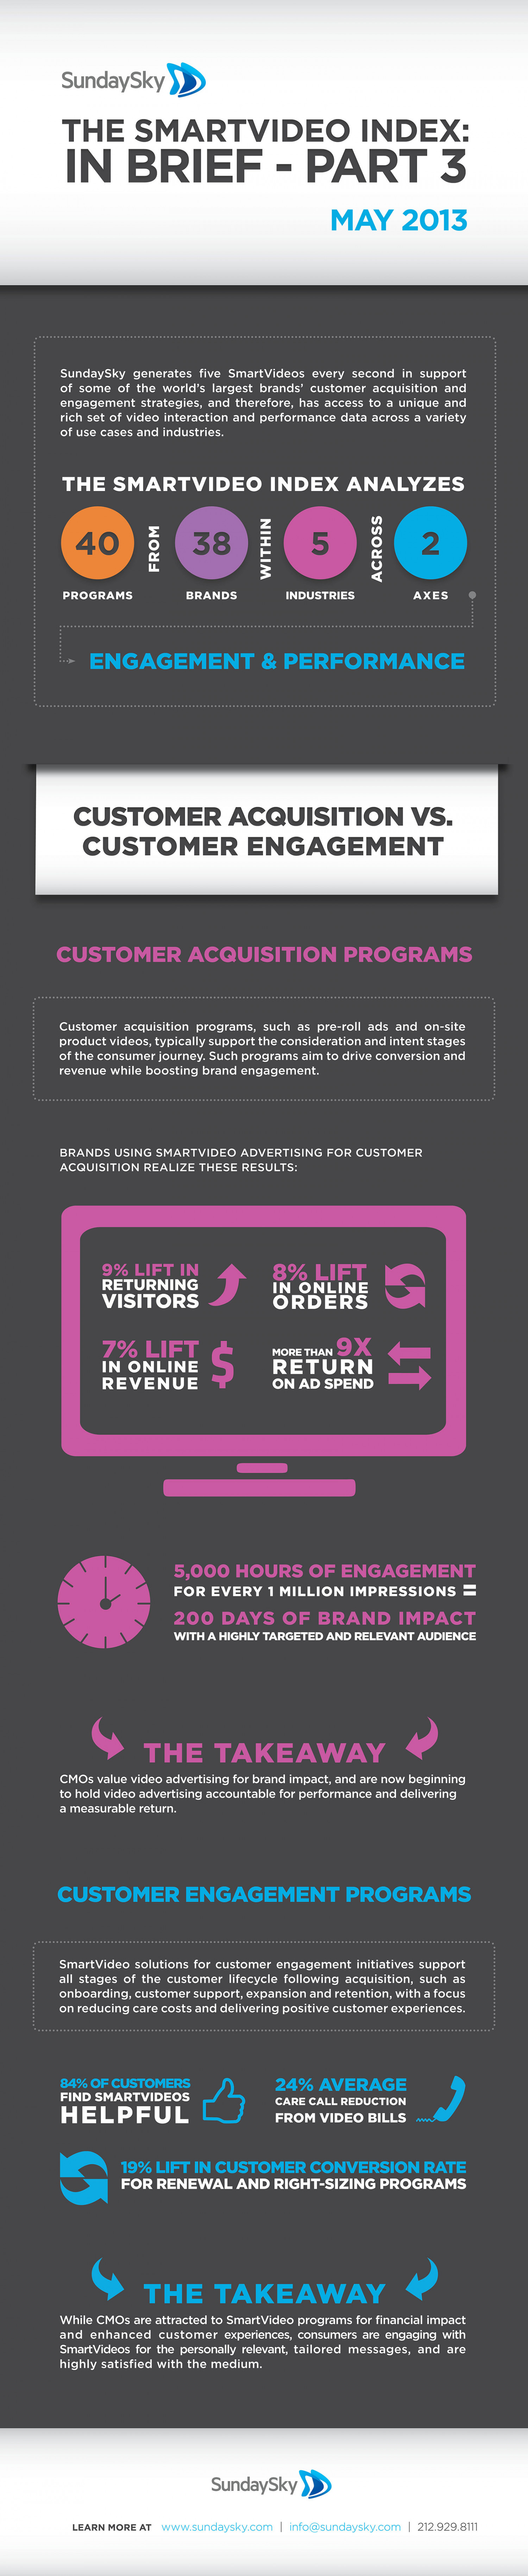 The SmartVideo Index: In Brief - Part 3 Infographic